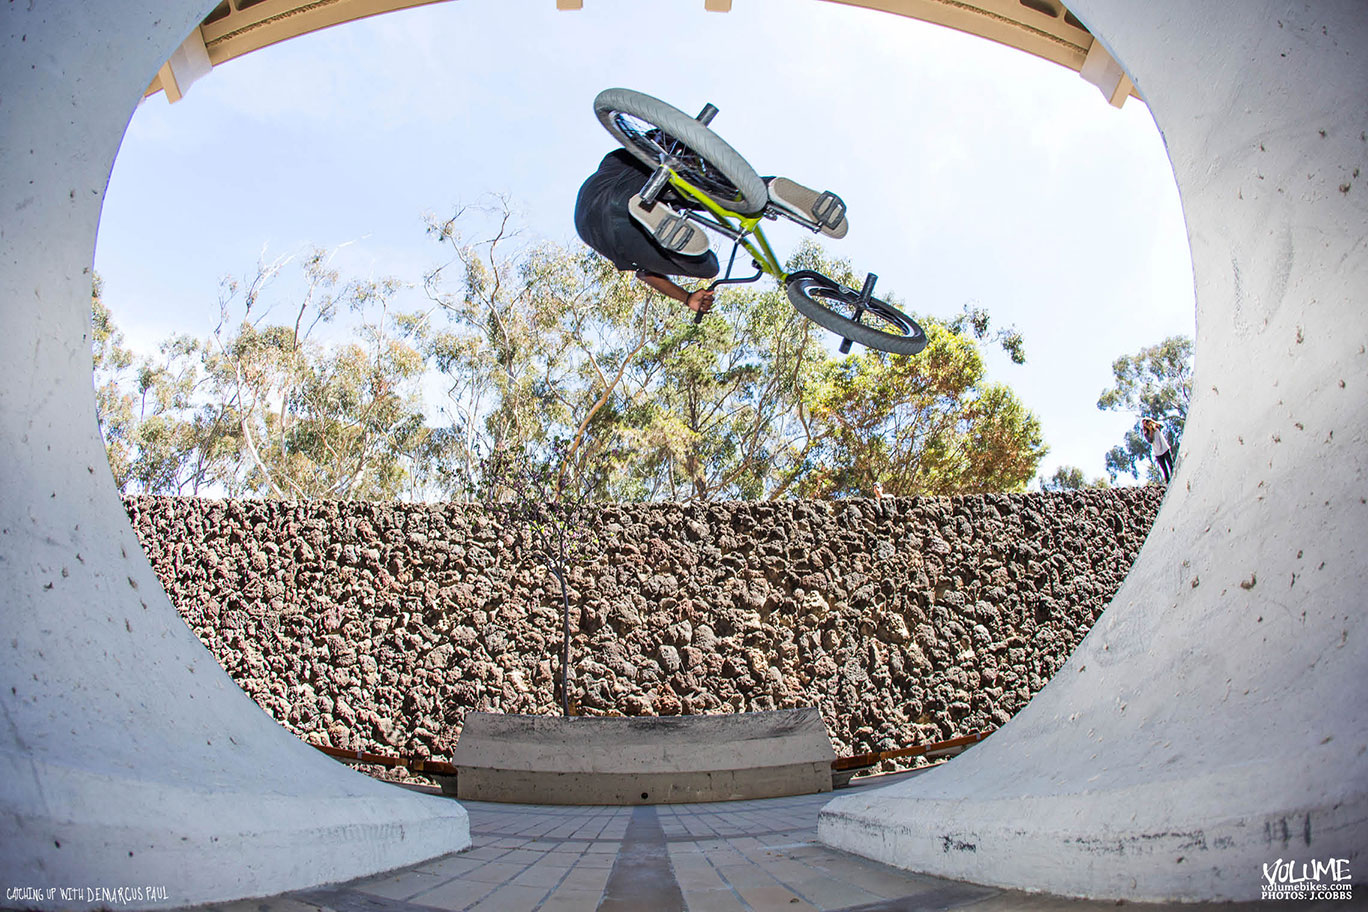 CATCHING UP WITH DEMARCUS PUAL: Air gap